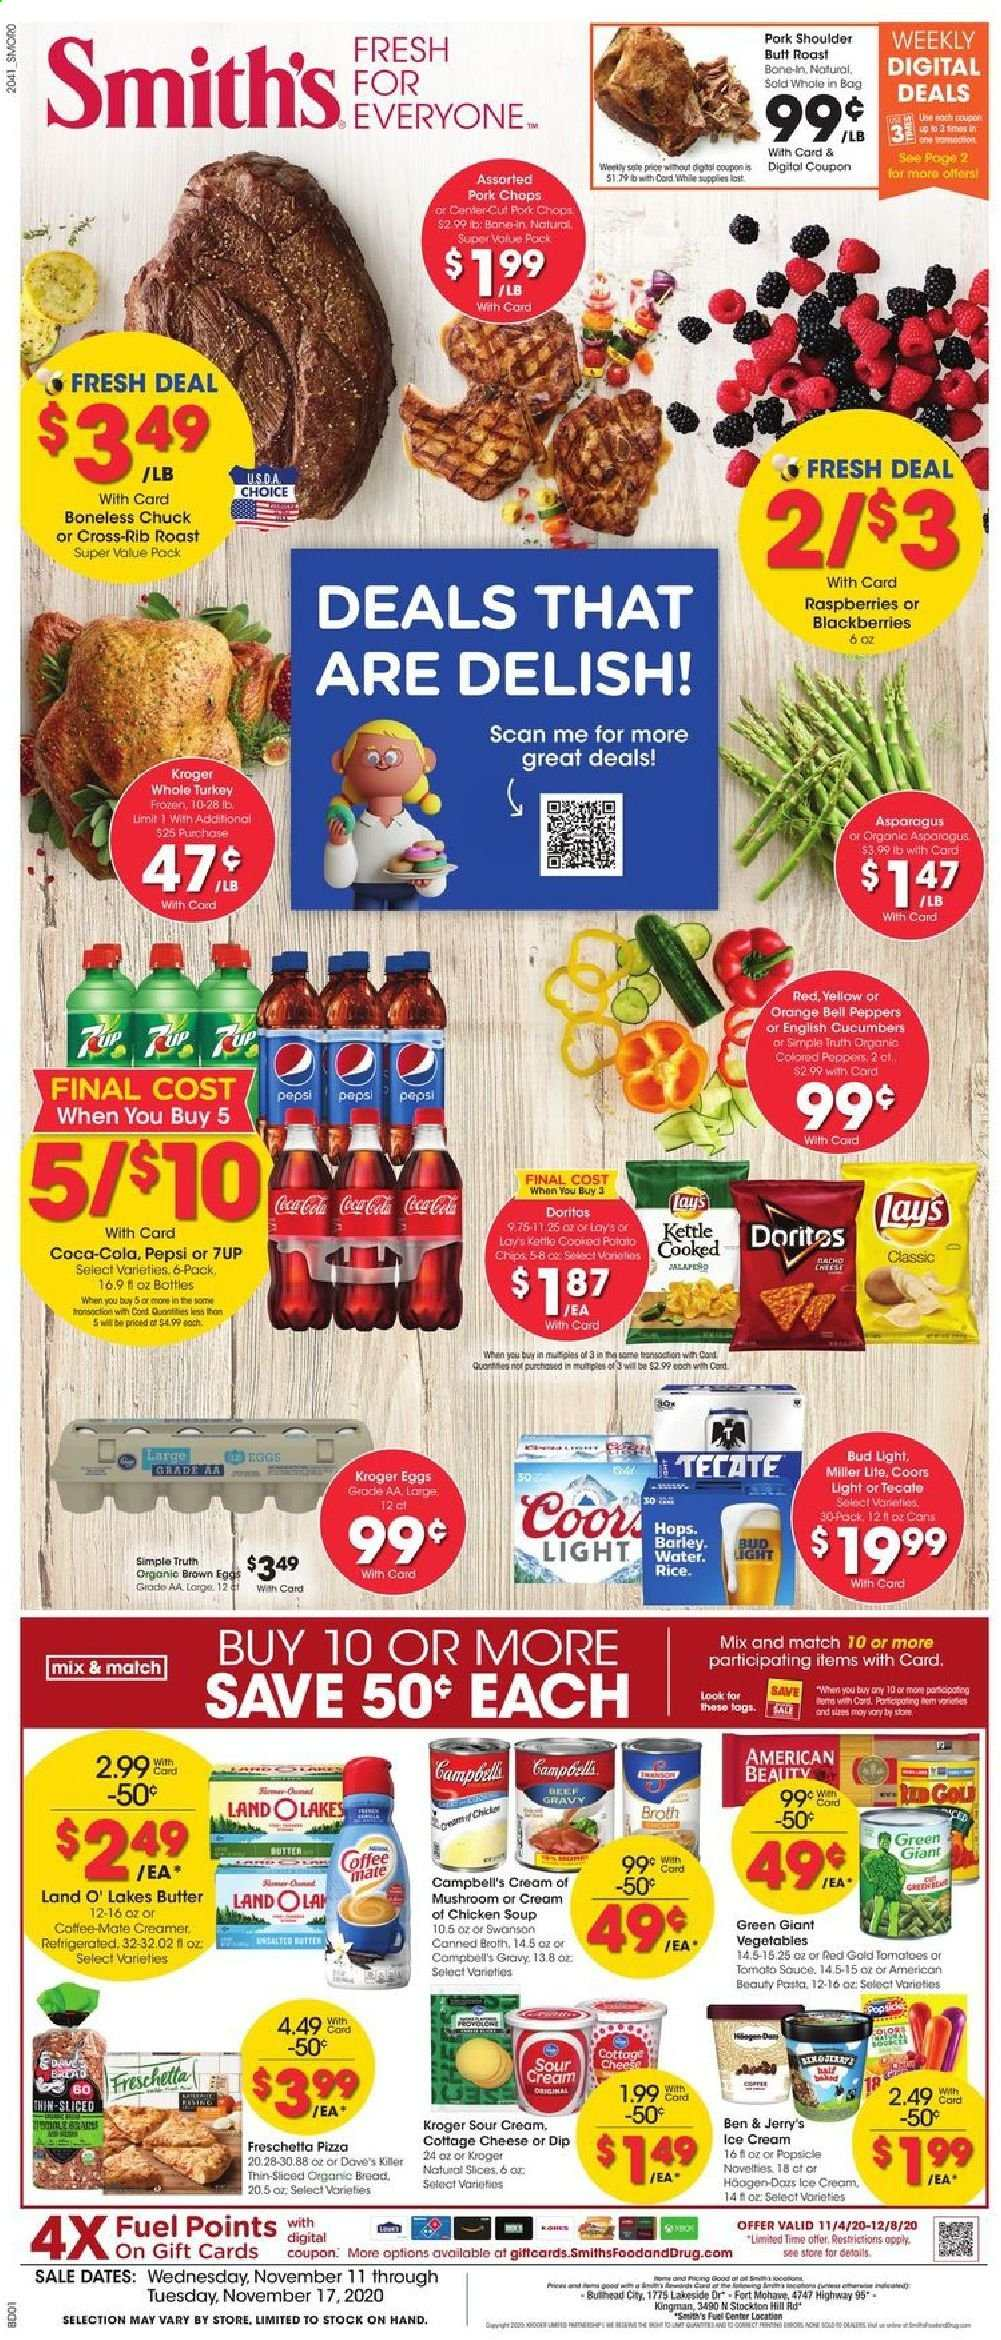 Smith's Flyer - 11.11.2020 - 11.17.2020 - Sales products - asparagus, barley, beef meat, bell peppers, blackberries, butter, Campbell's, Coca-Cola, Coffee-Mate, cottage cheese, cucumbers, Doritos, eggs, frozen, fuel, Miller Lite, raspberries, rib roast, rice, sour cream, tomatoes, turkey, whole turkey, ice cream, pizza, pork chops, pork meat, pork shoulder, potato chips, chicken, Pepsi, orange, chicken soup, chips, cheese, soup, Vegetables, mushroom, creamer, pasta, Bud Light, Lay's, Coors, peppers, kettle, vegetable. Page 1.